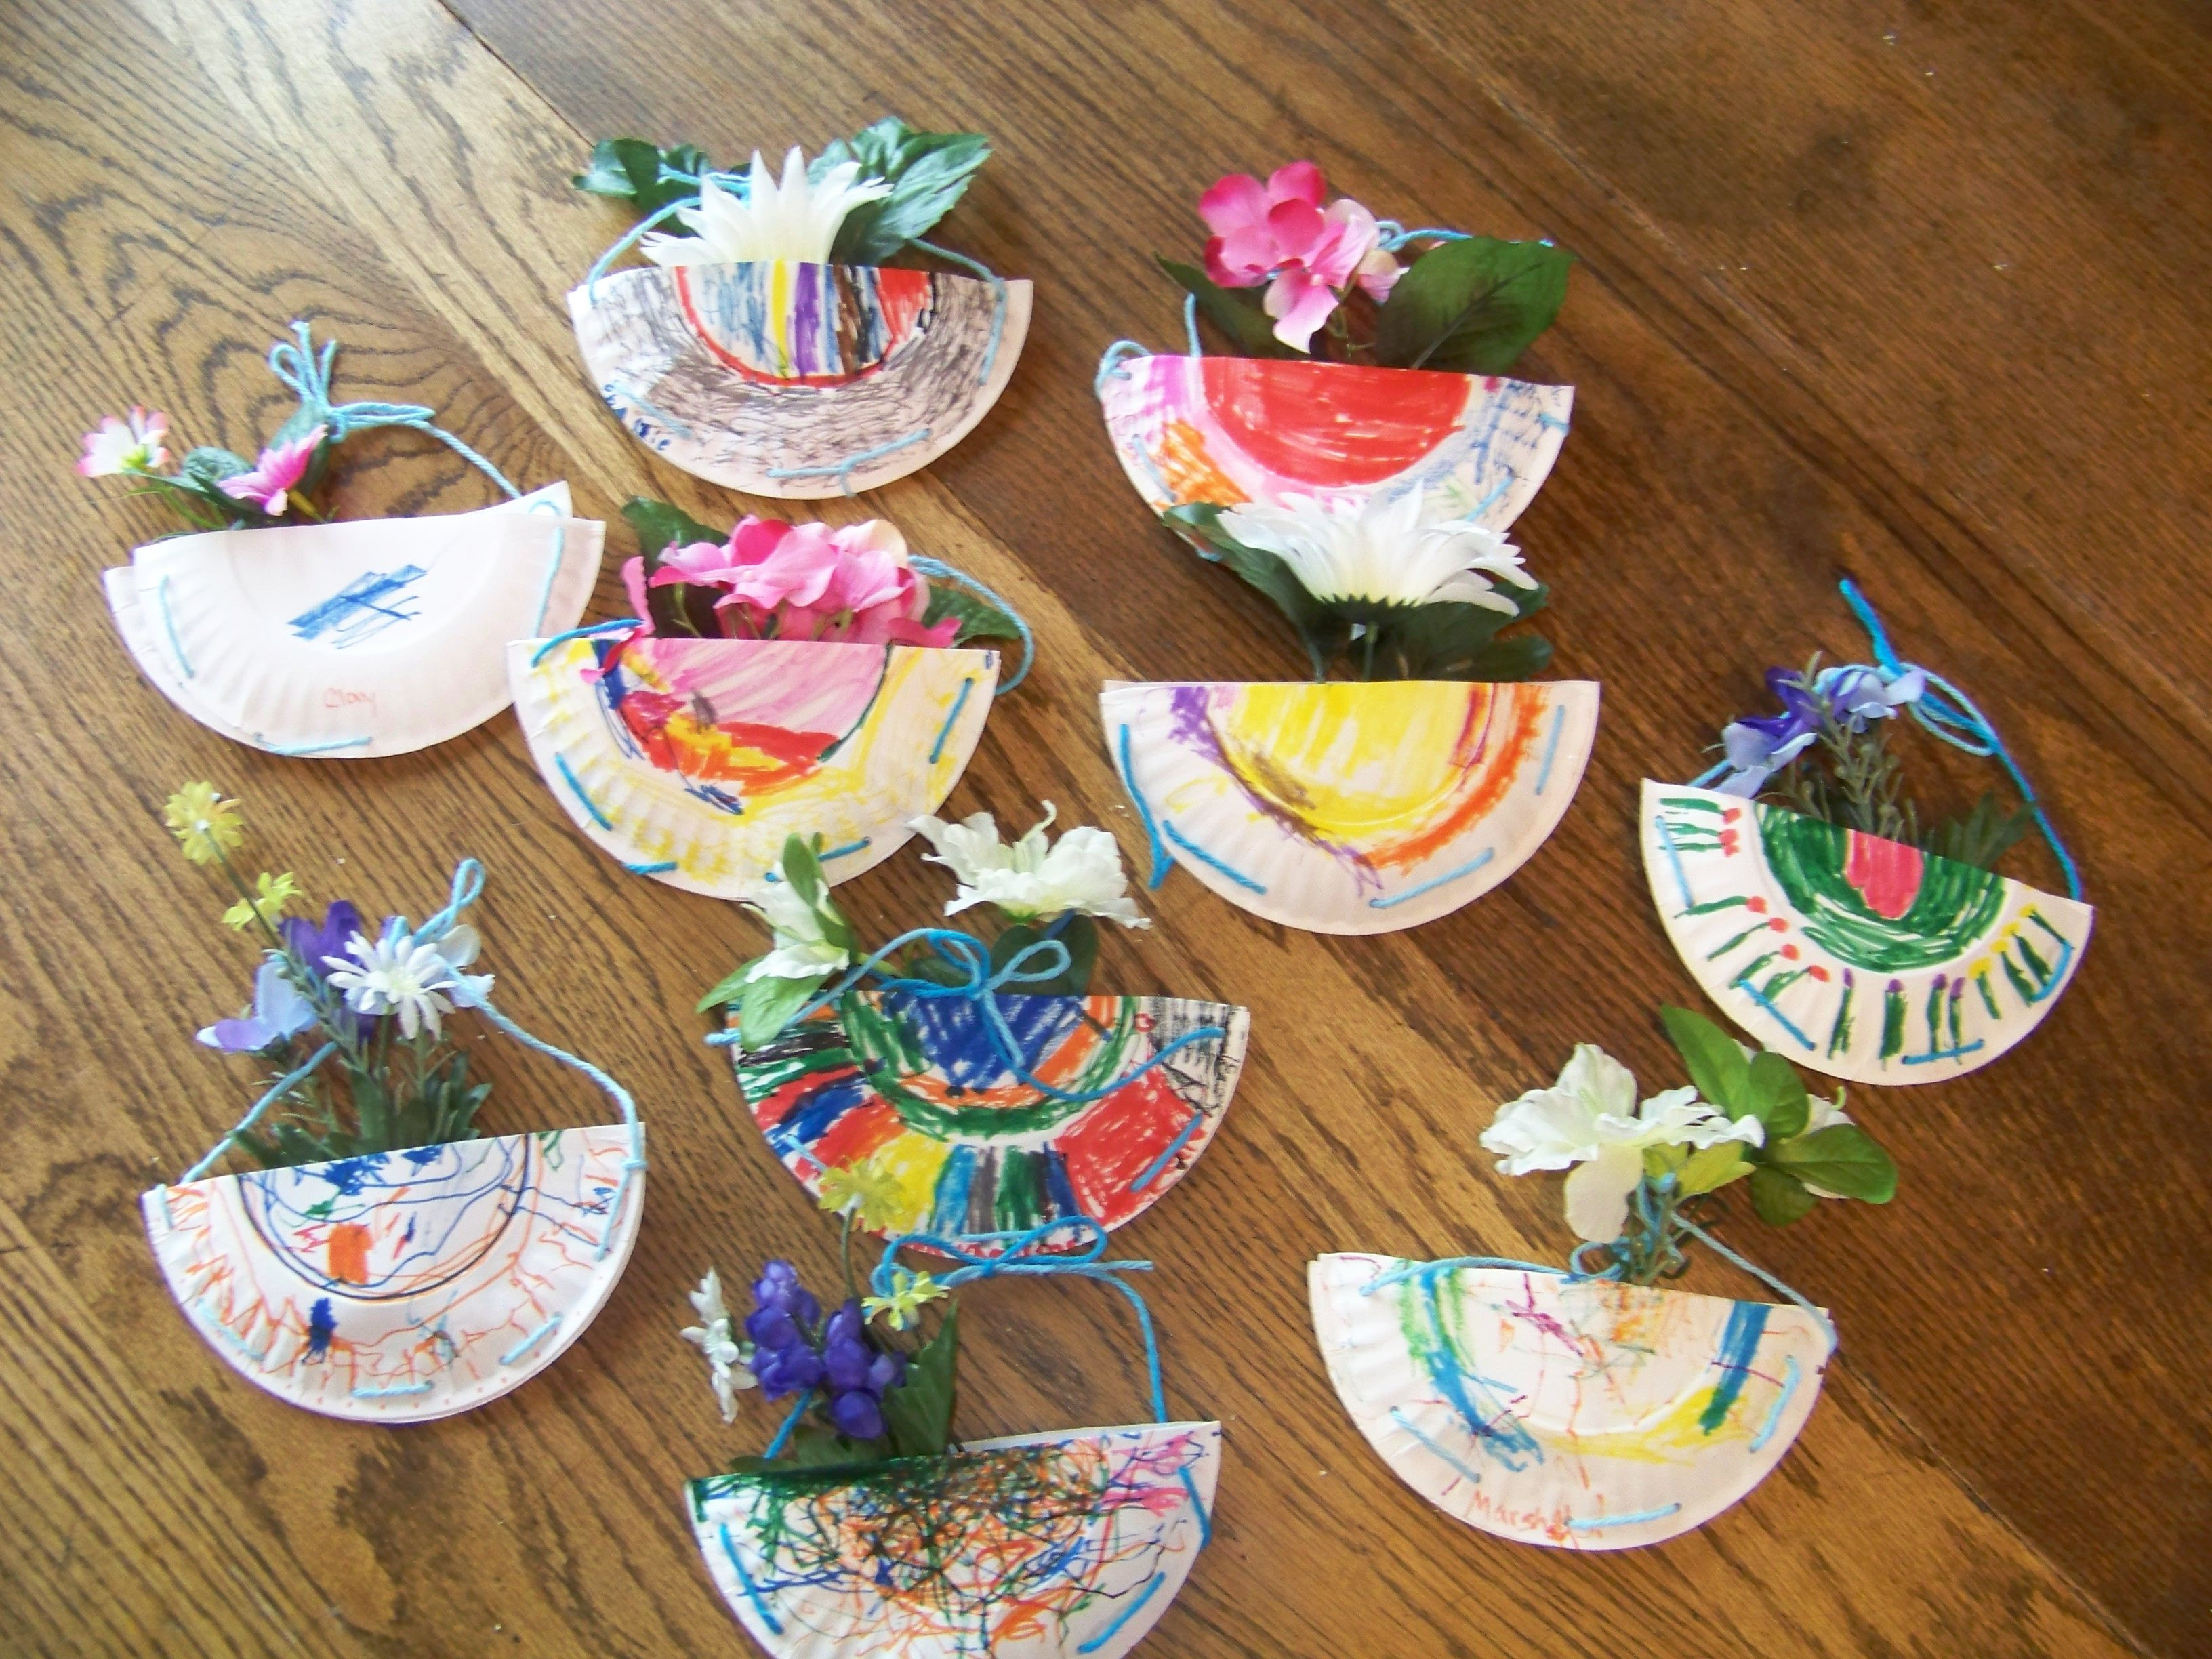 Fake flowers for crafts - May Day Flower Baskets Kids Craft Paper Plate Markers Yarn Tape